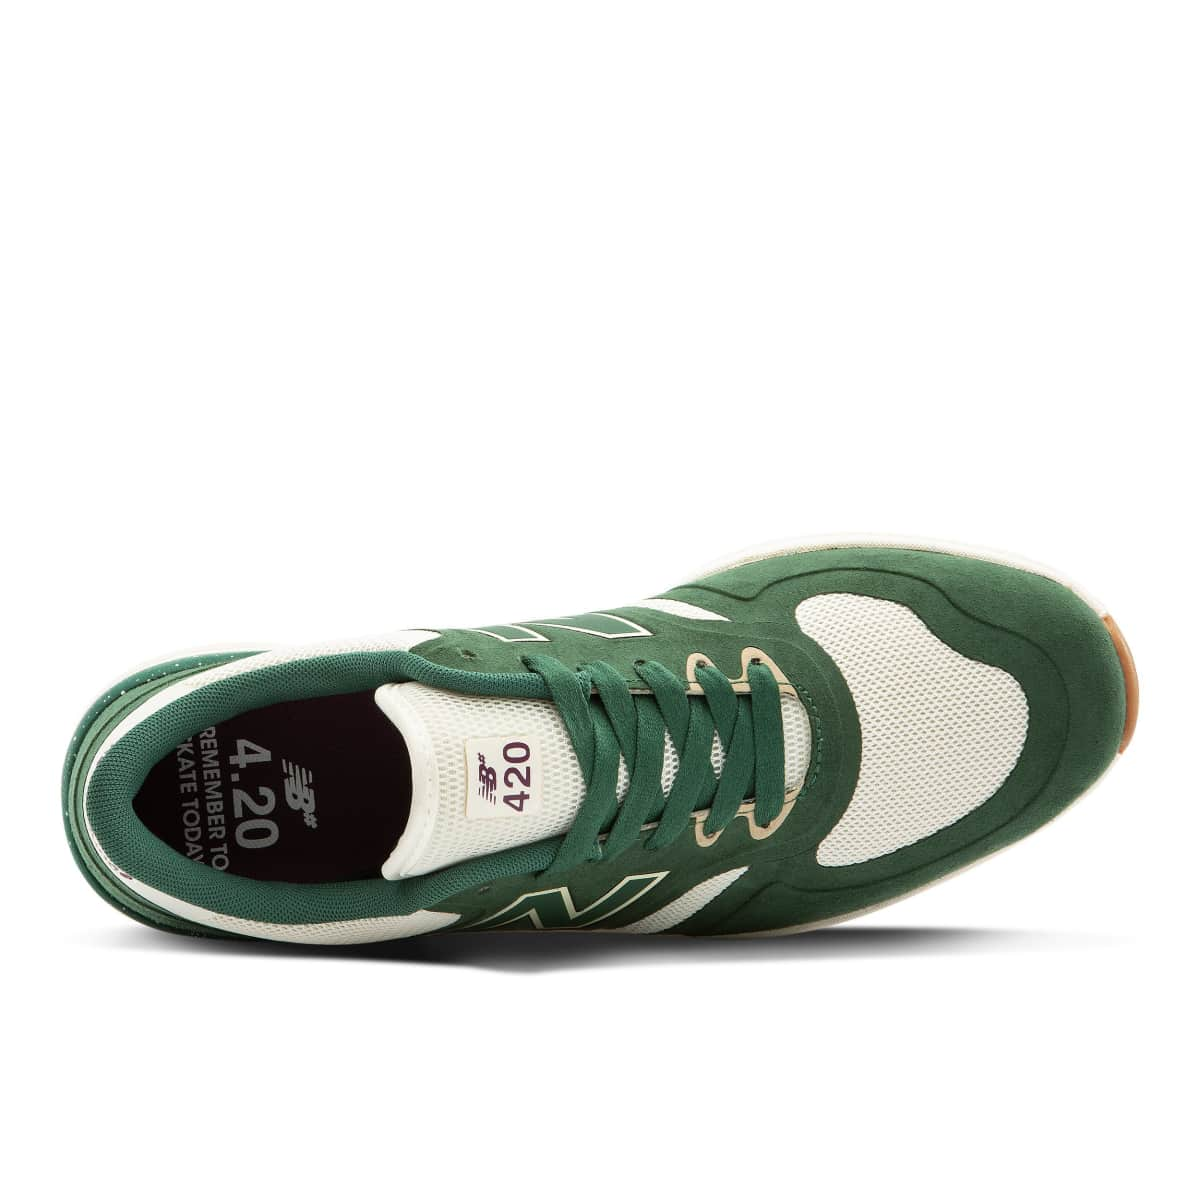 New Balance Numeric 420 Skate Shoe - Green / White - Limited Edition